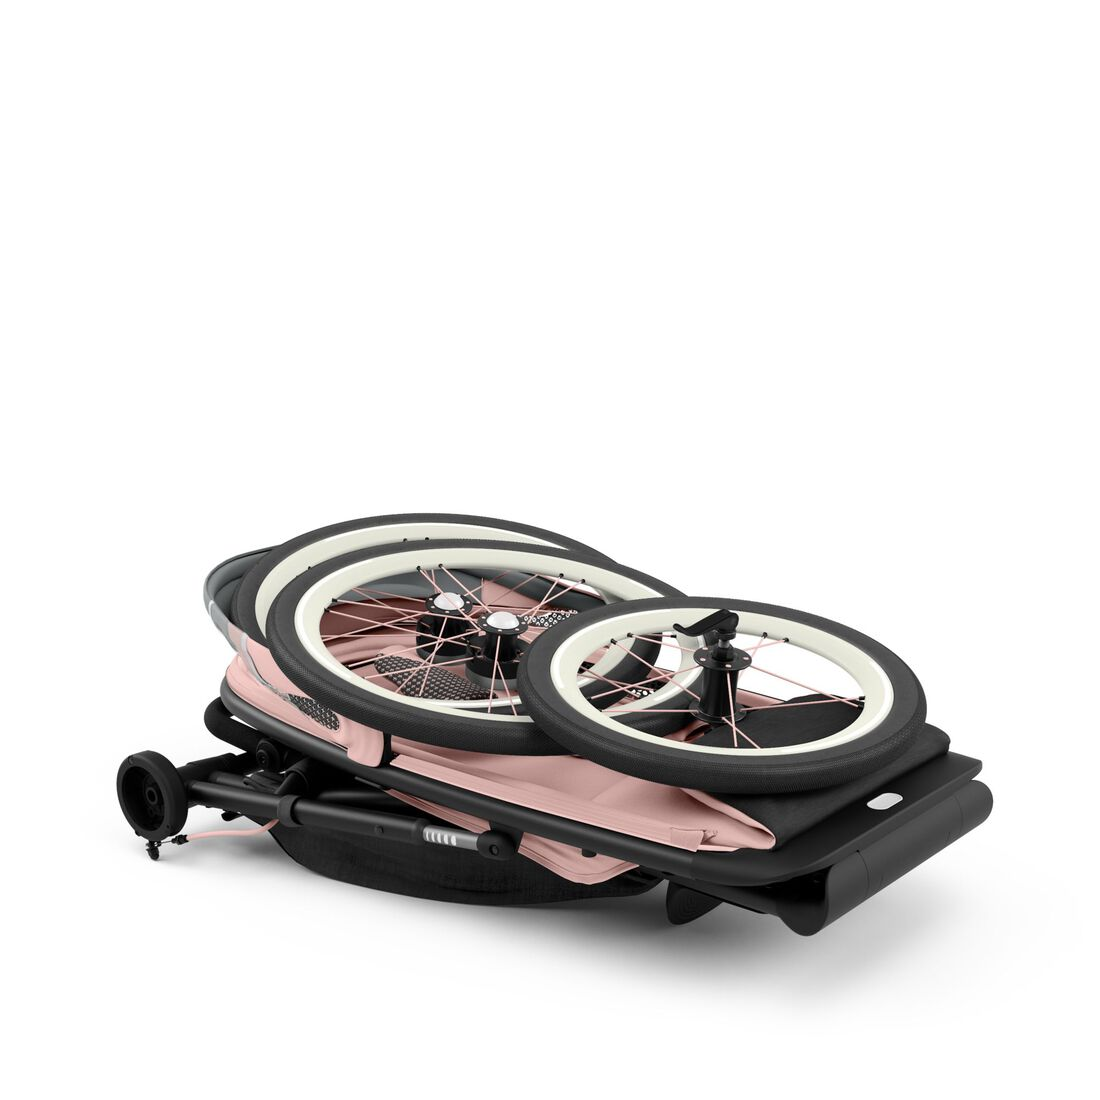 CYBEX Avi Frame - Black With Pink Details in Black With Pink Details large image number 6